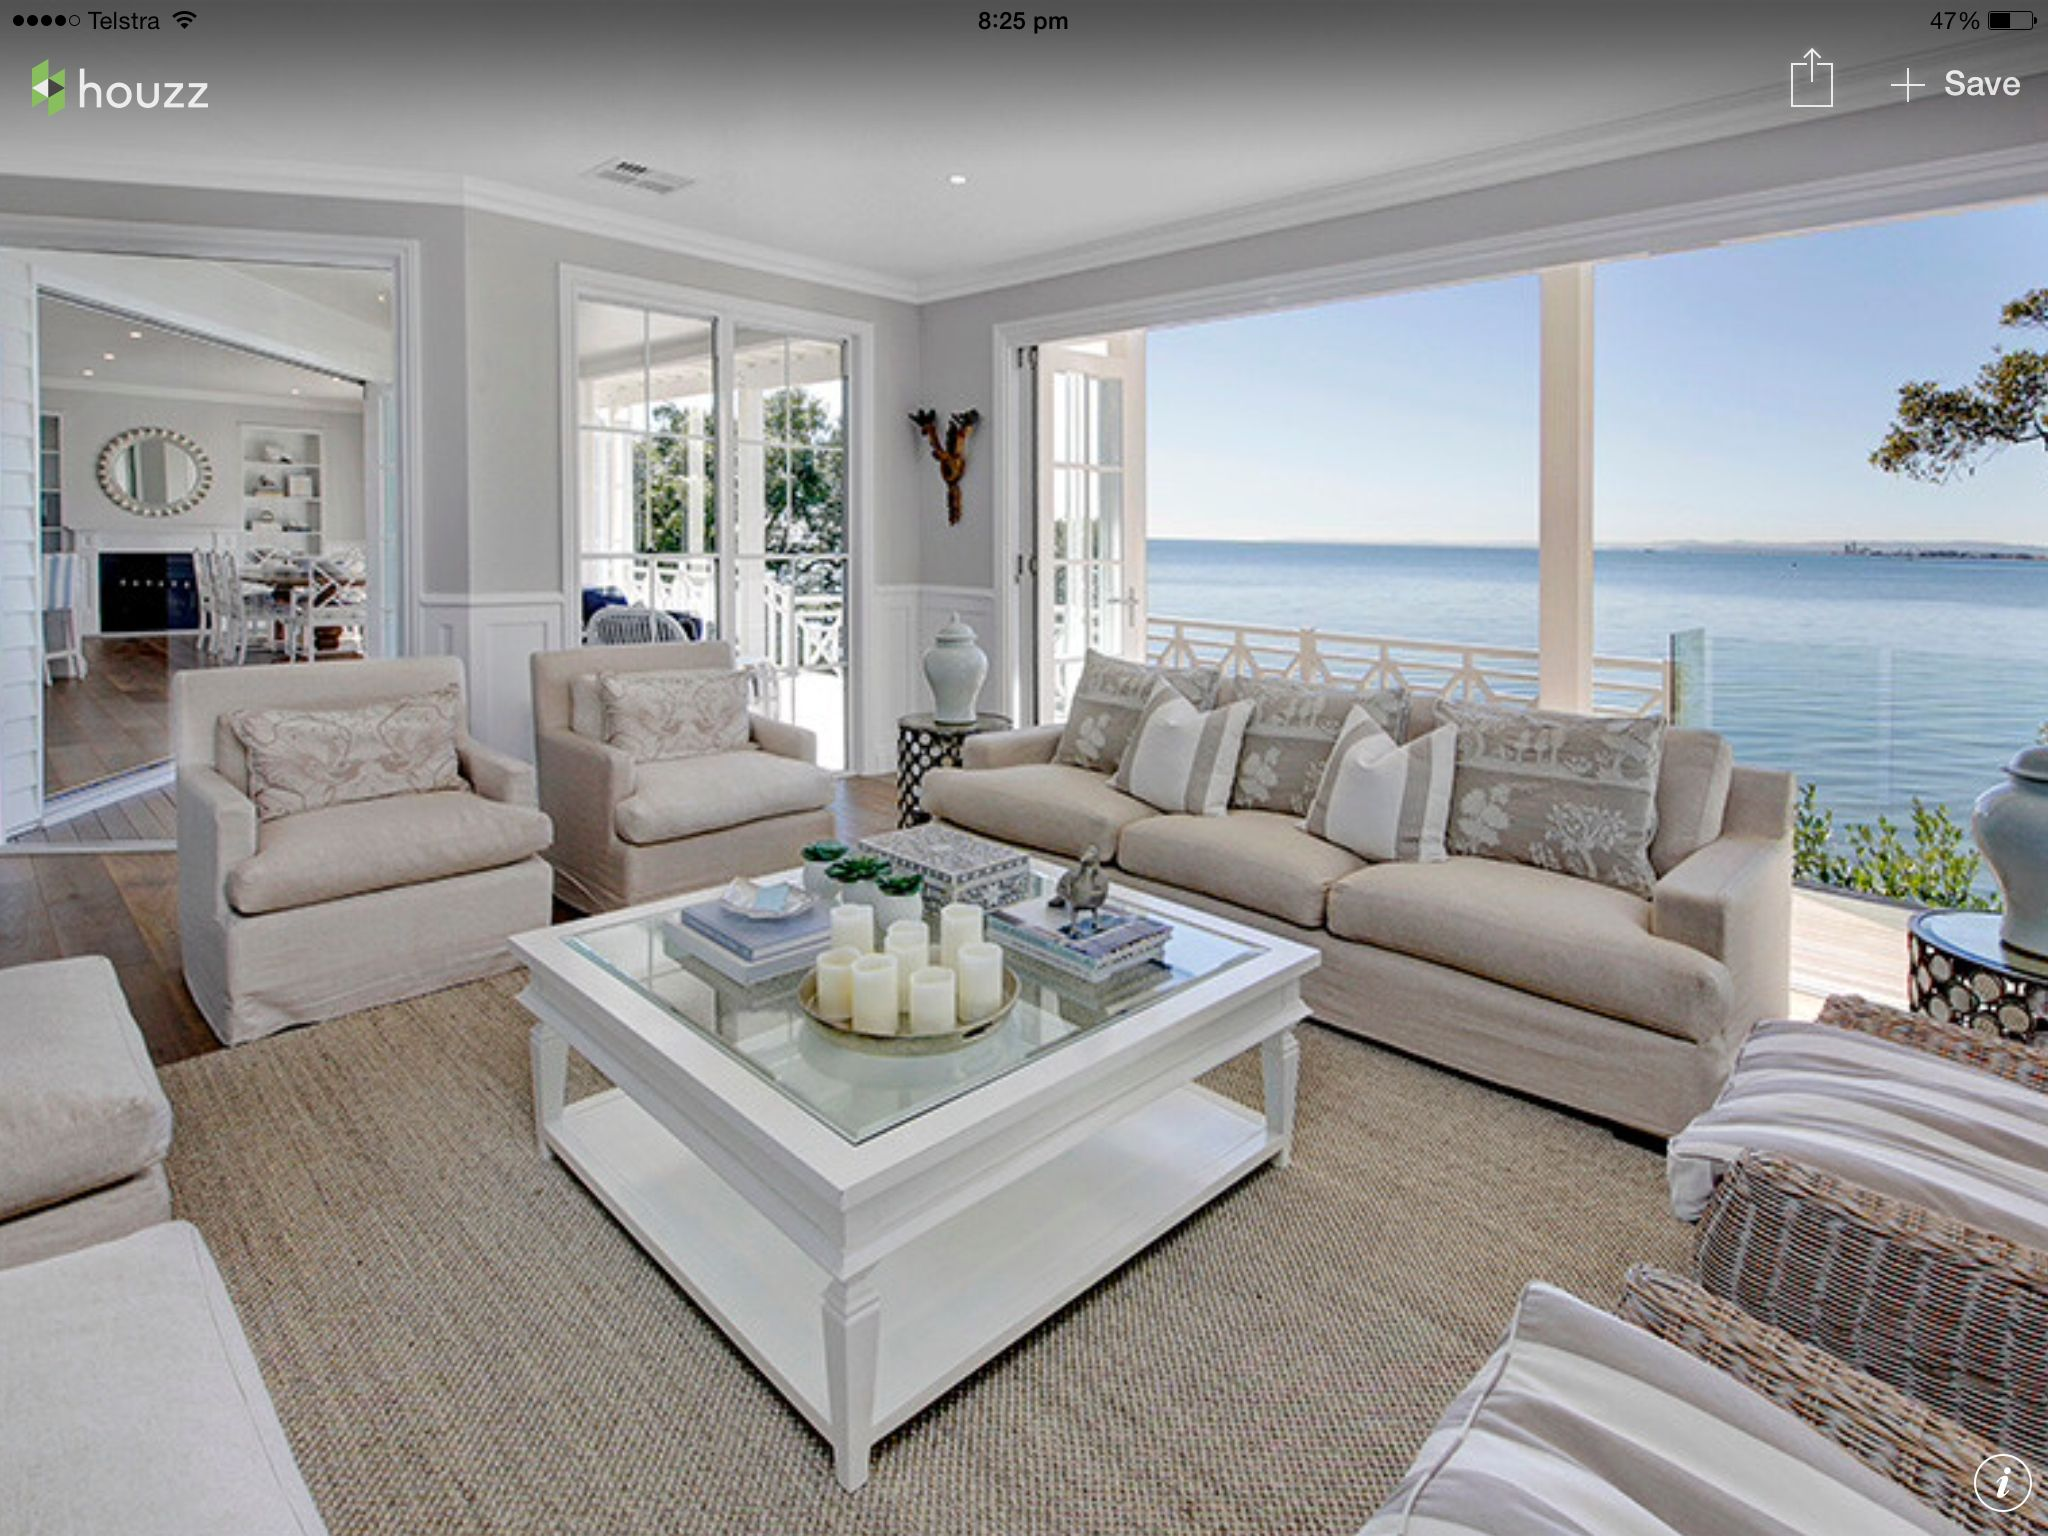 Decorating ideas armchairs pinterest armchairs for Beach themed living room on a budget